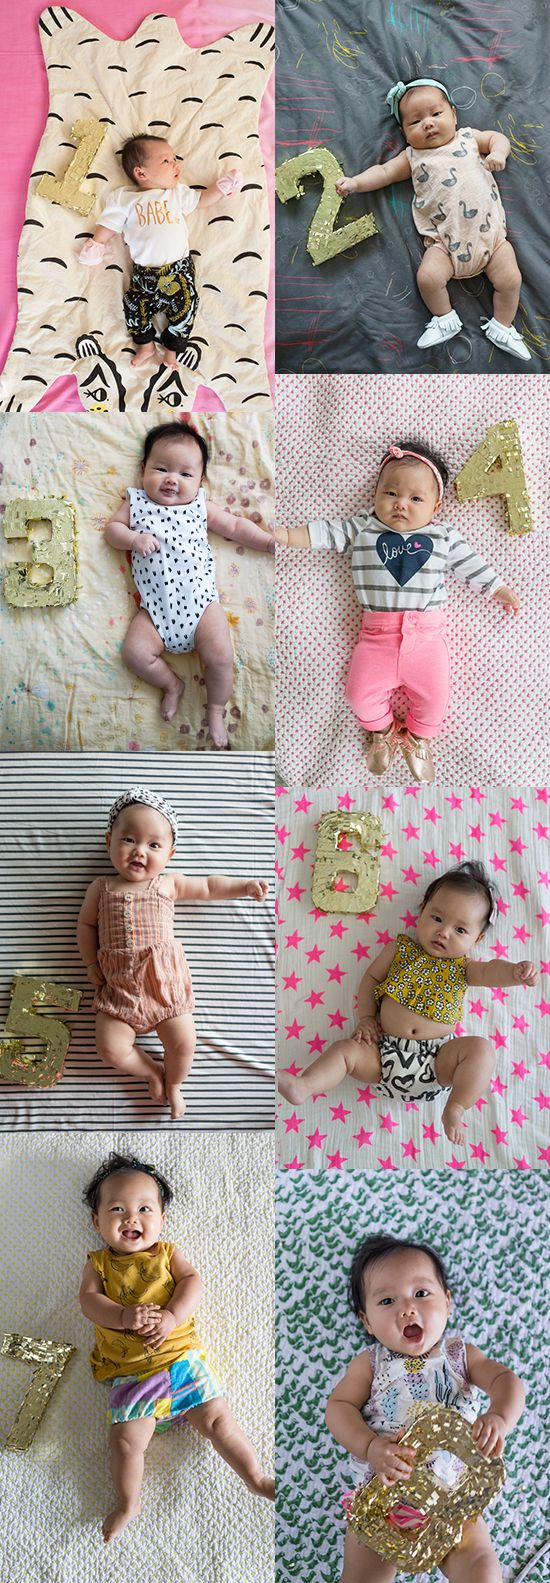 Good idea to chronicle the growth of a baby.